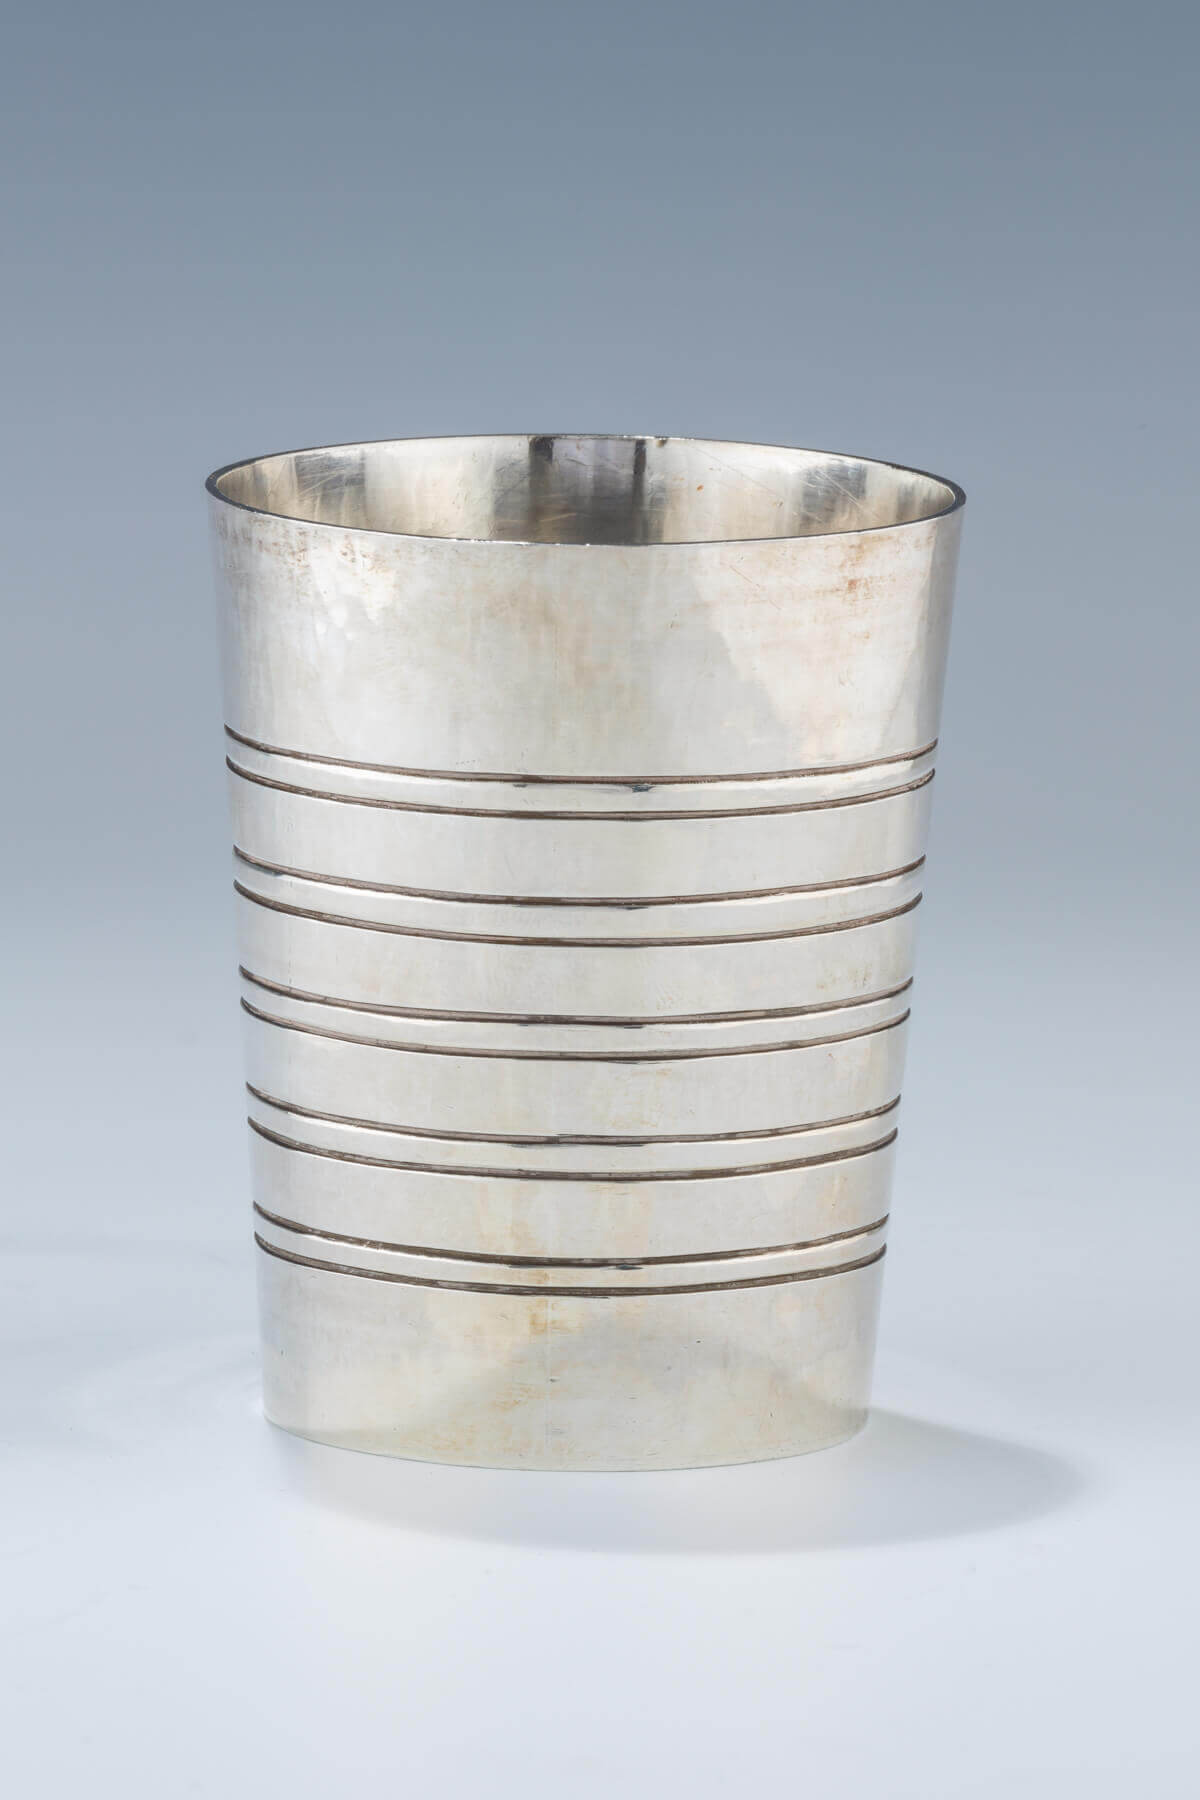 171. A STERLING SILVER KIDDUSH CUP BY DAVID GUMBEL